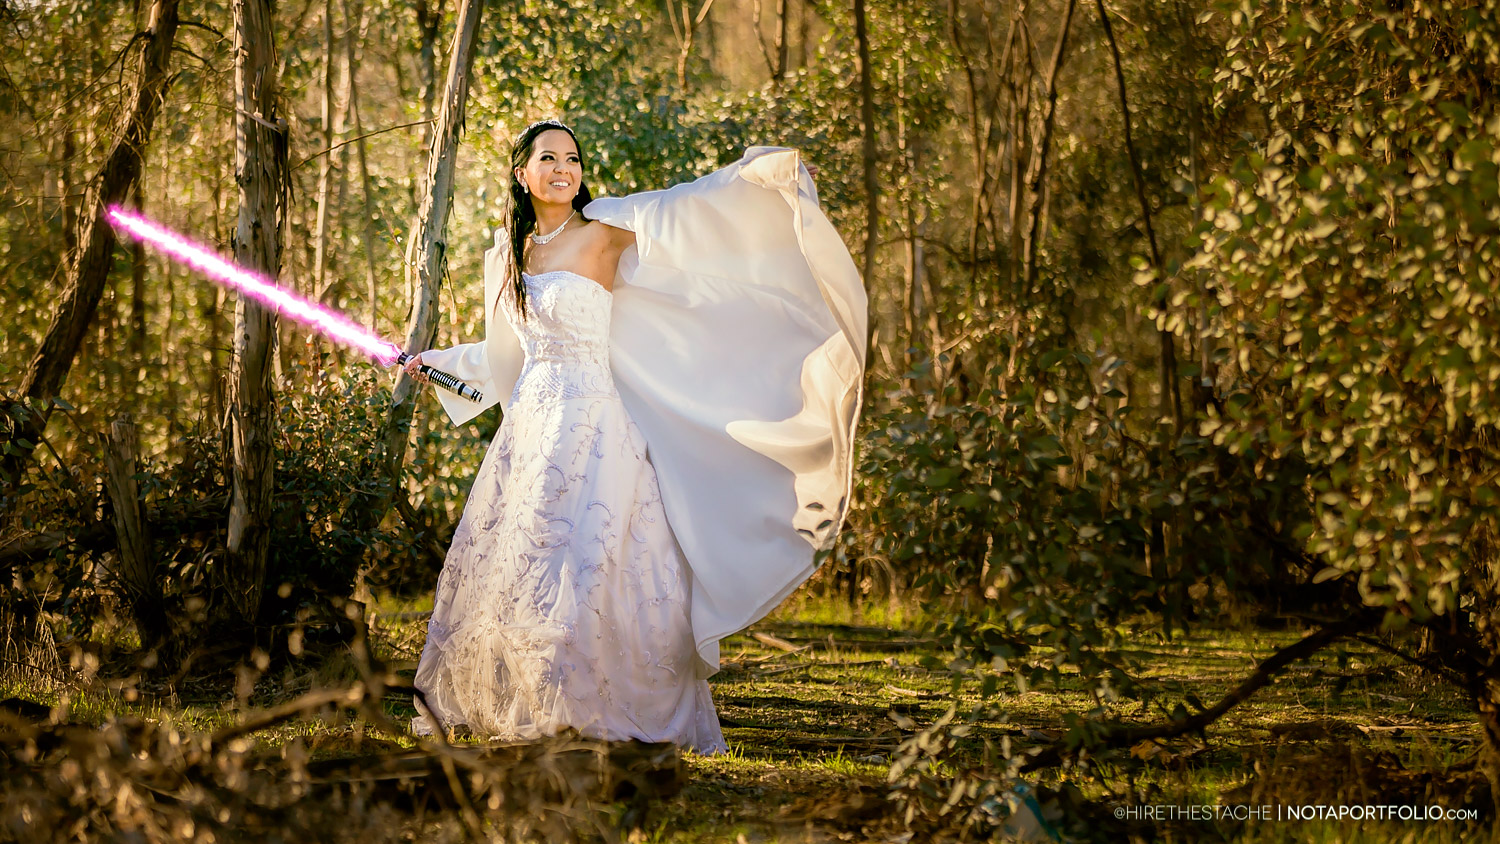 Star Wars Wedding on $5,000 Budget Features Lightsabers